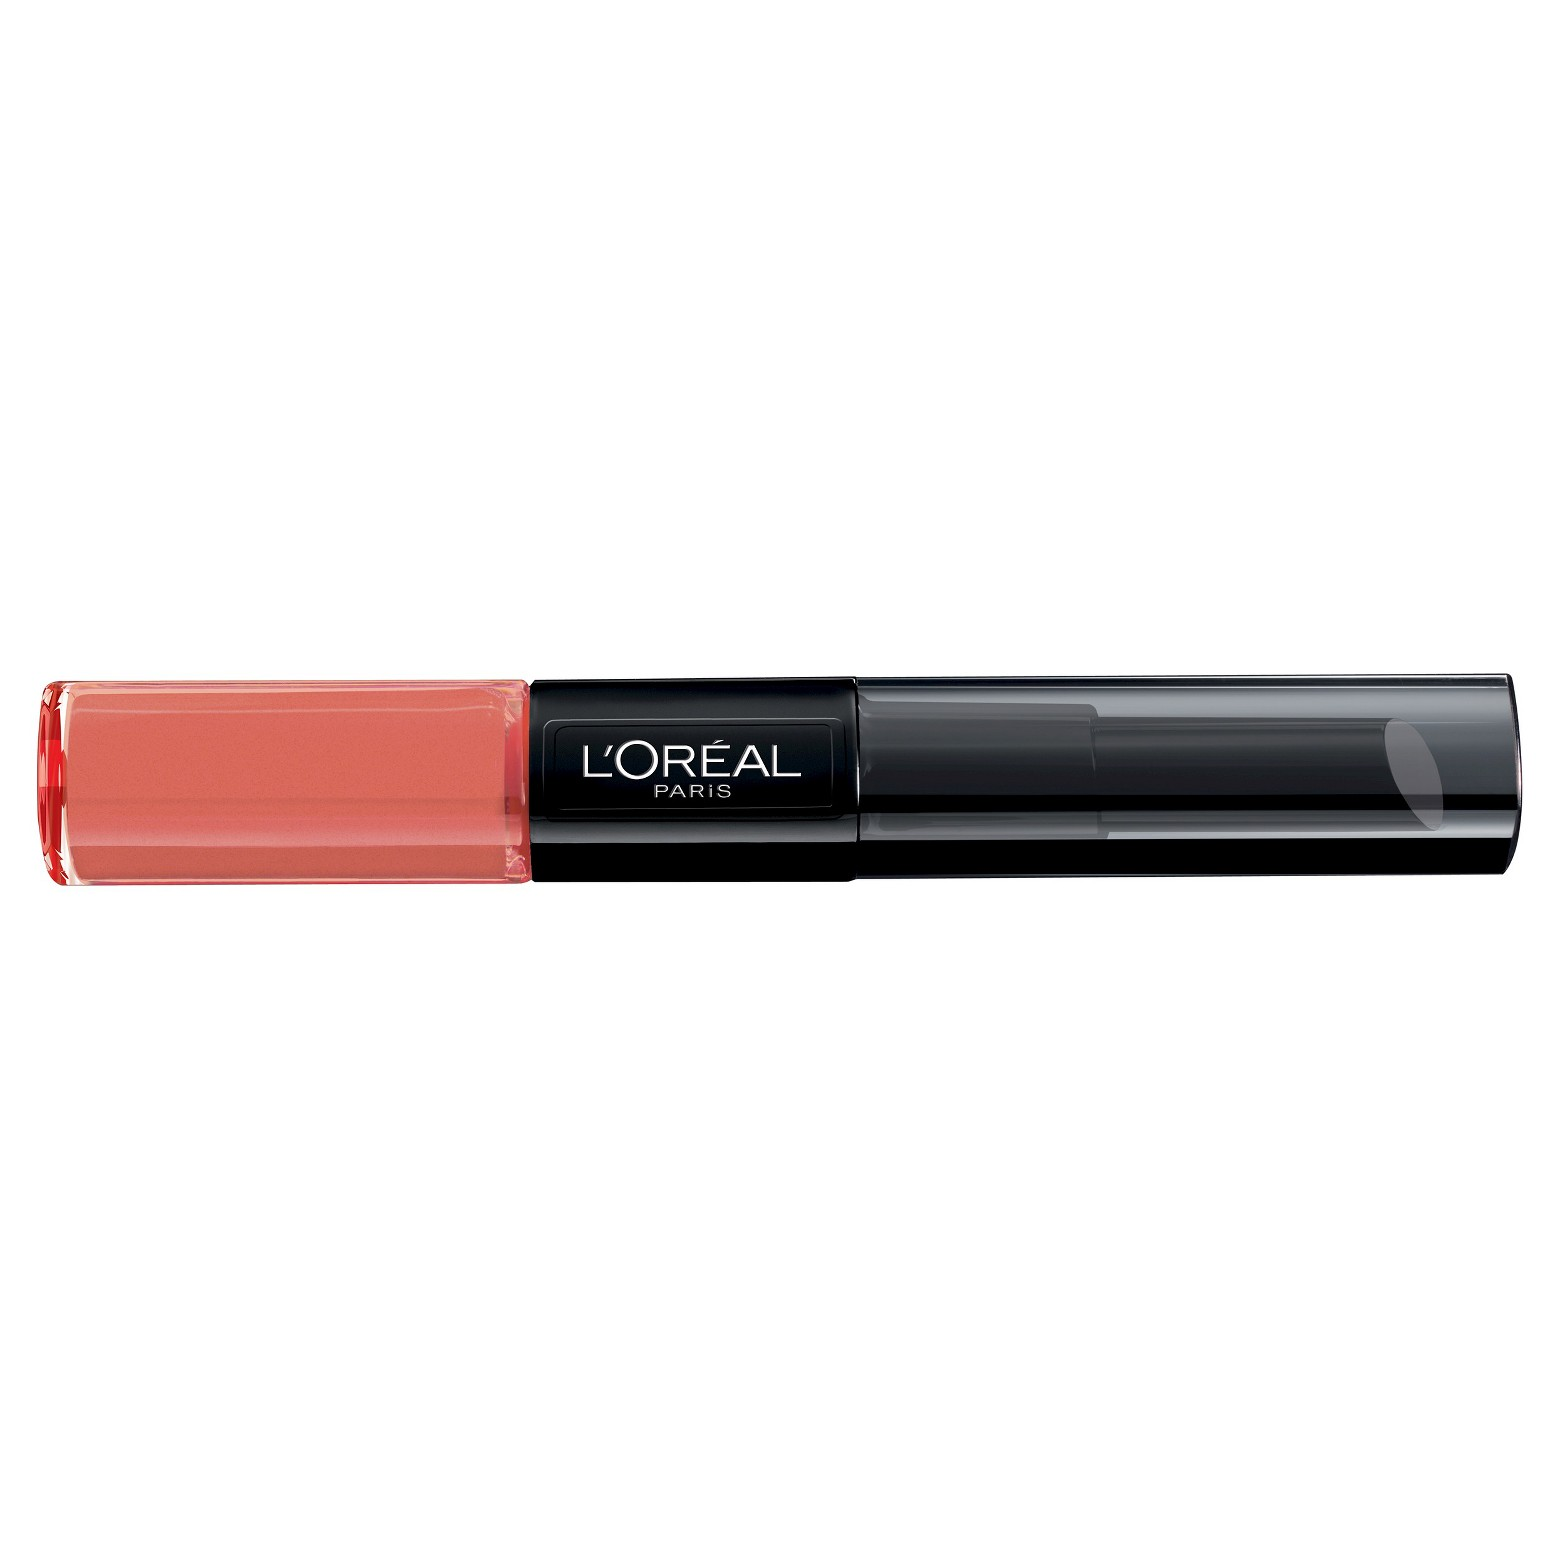 L'Oreal 2-step lip stain in color #201. Super neutral color and stays on for days!